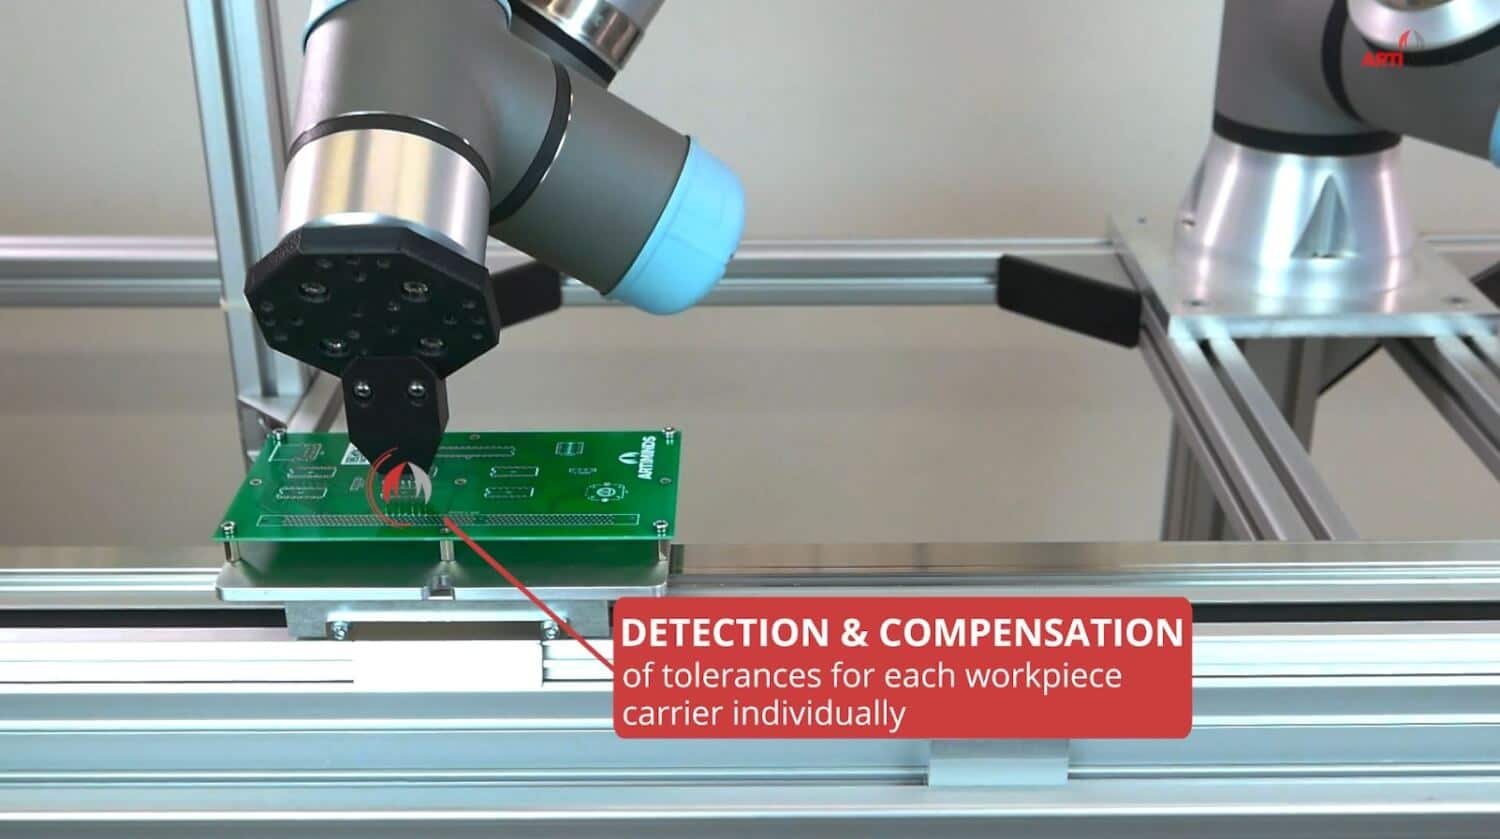 ArtiMinds Learning & Analytics for Robots - Comensation of tolerances and process optimization